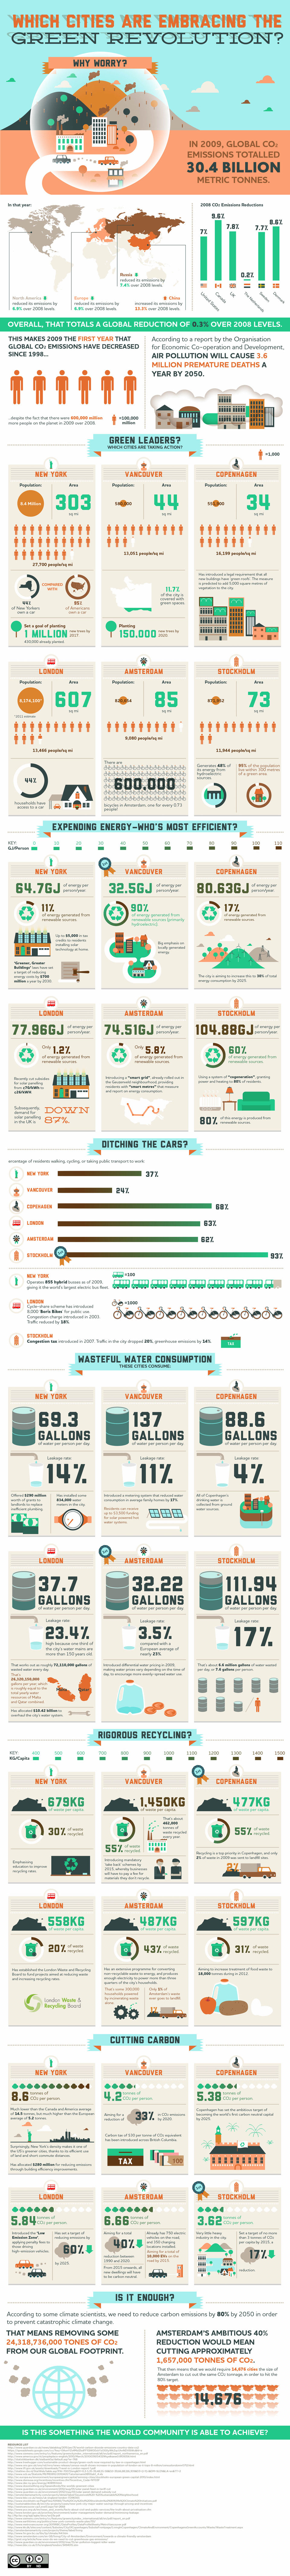 Top Green Cities-Infographic